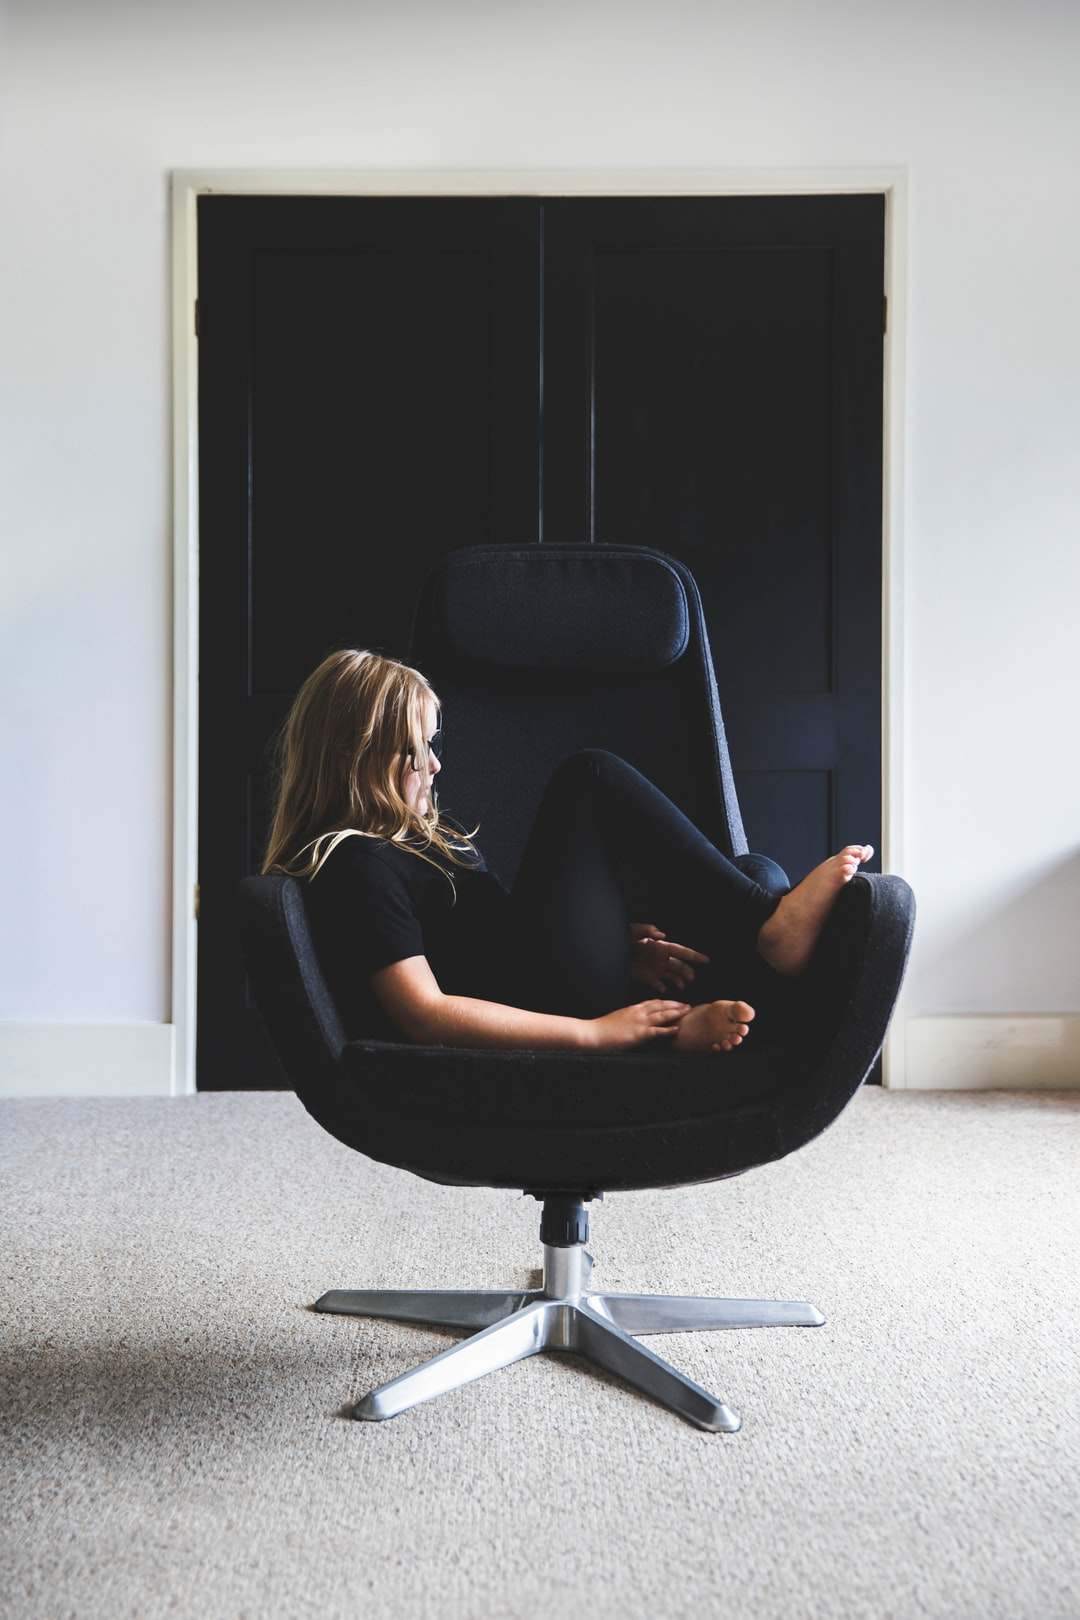 Girls in black chair and black doors